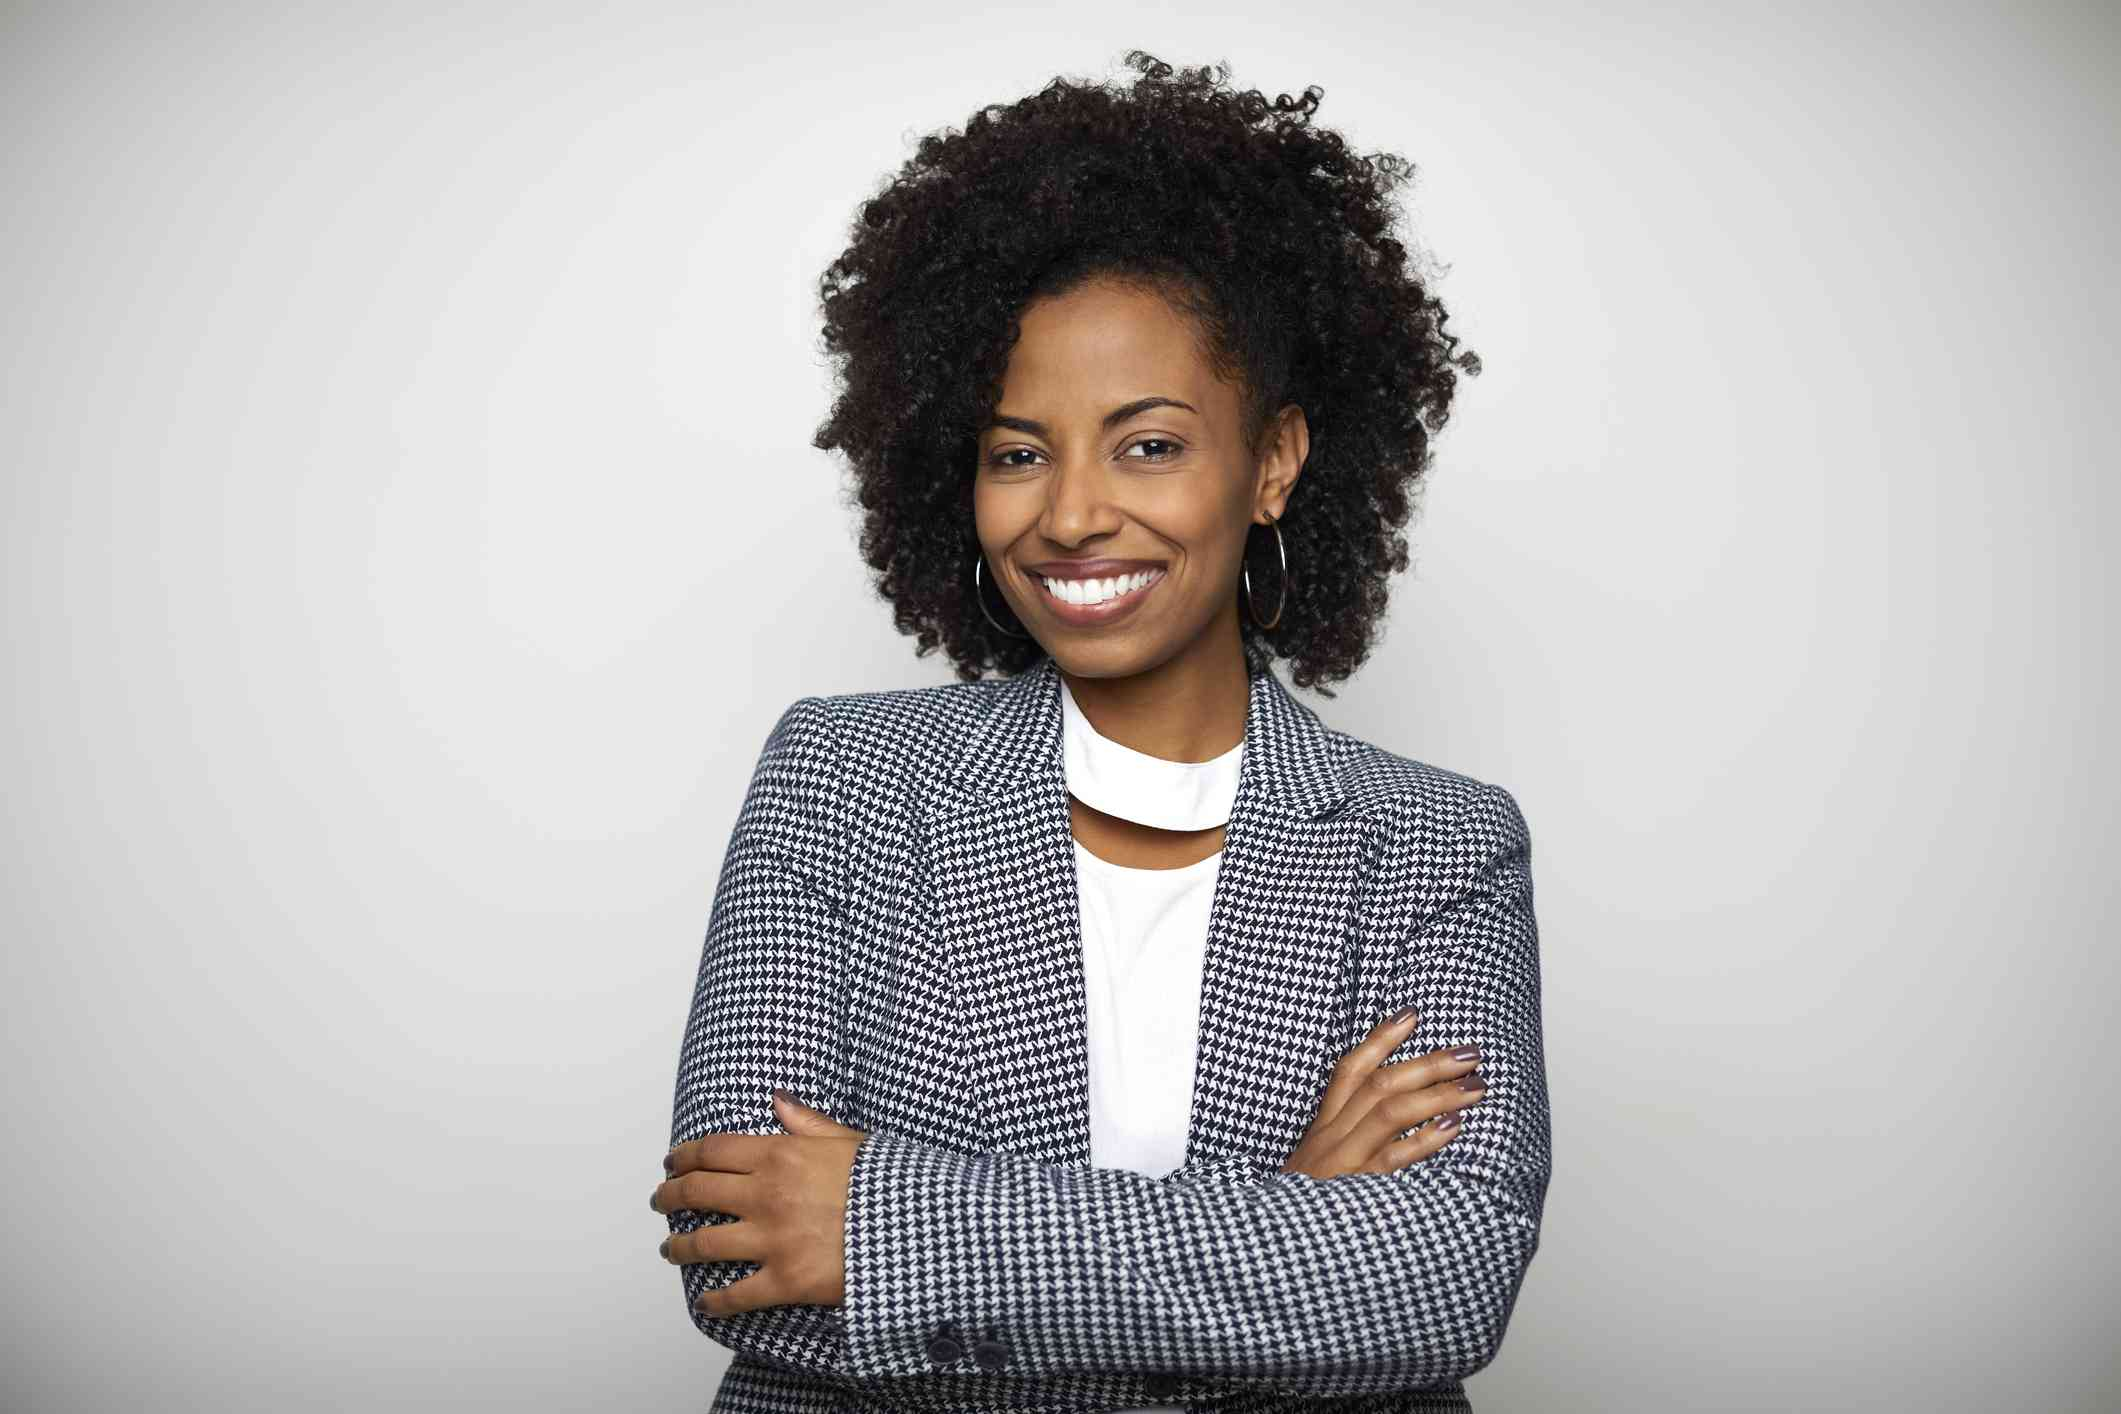 Smiling businesswoman against white background